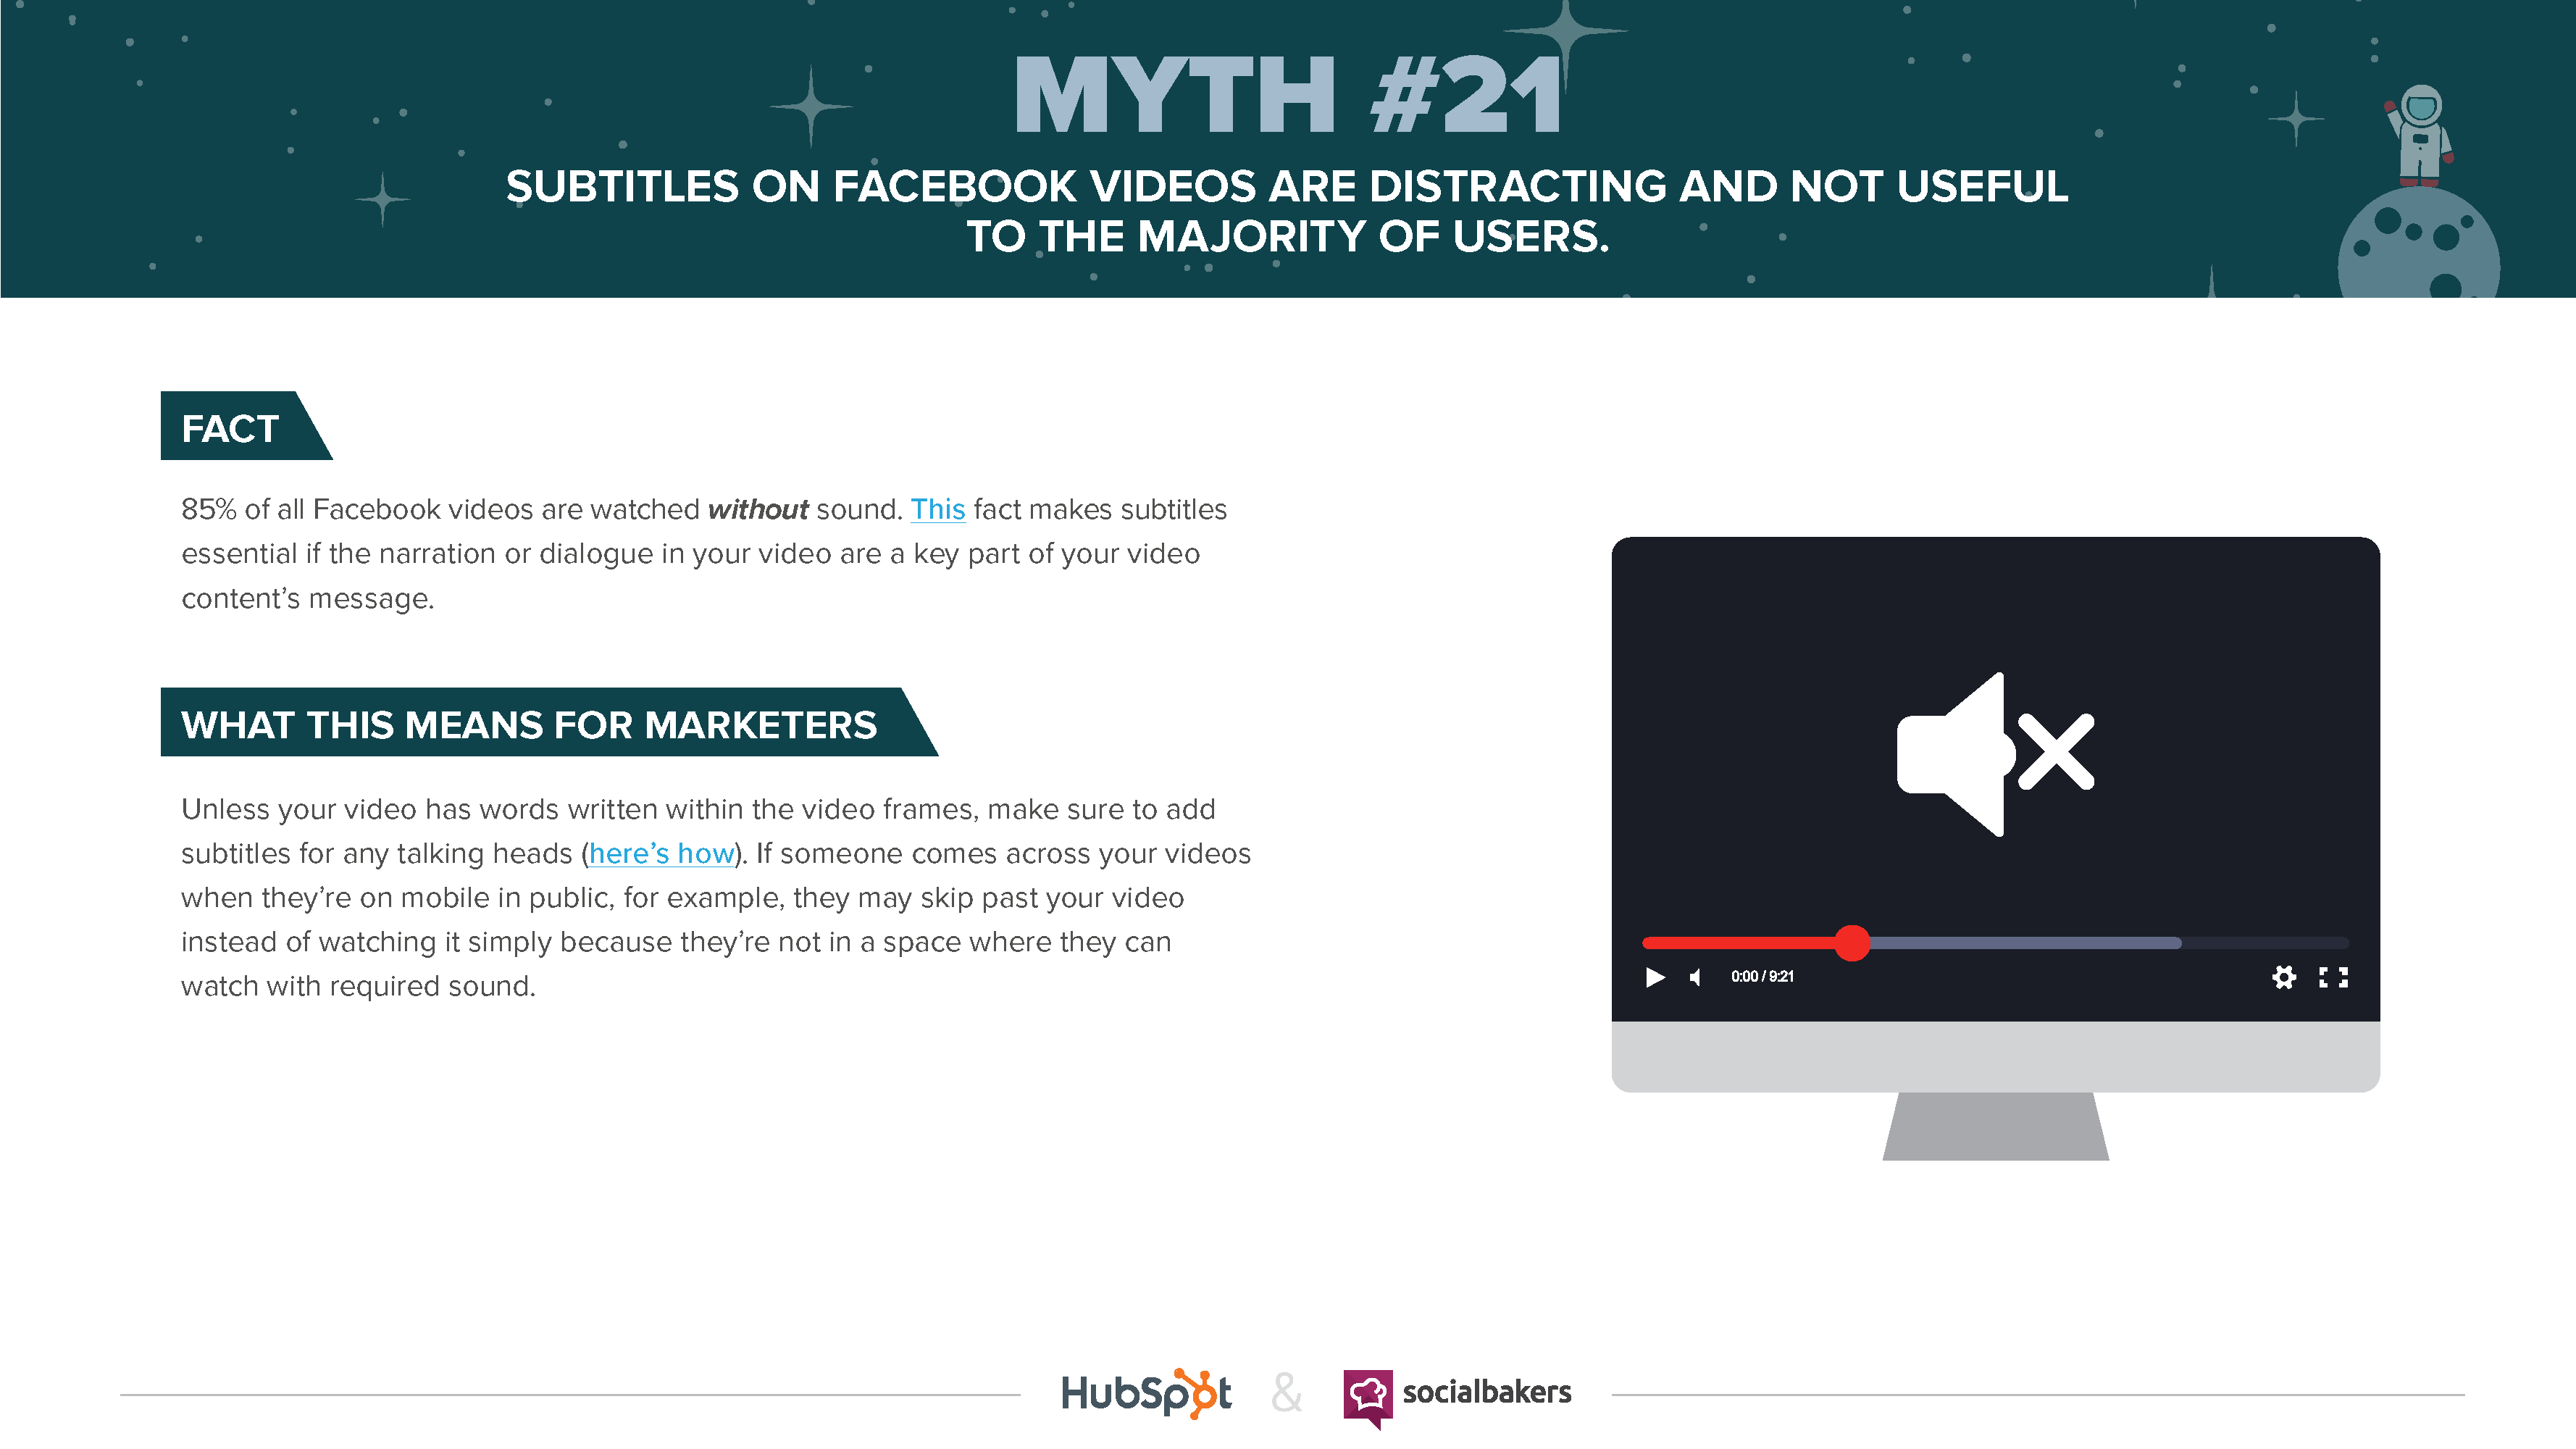 Facebook Myths